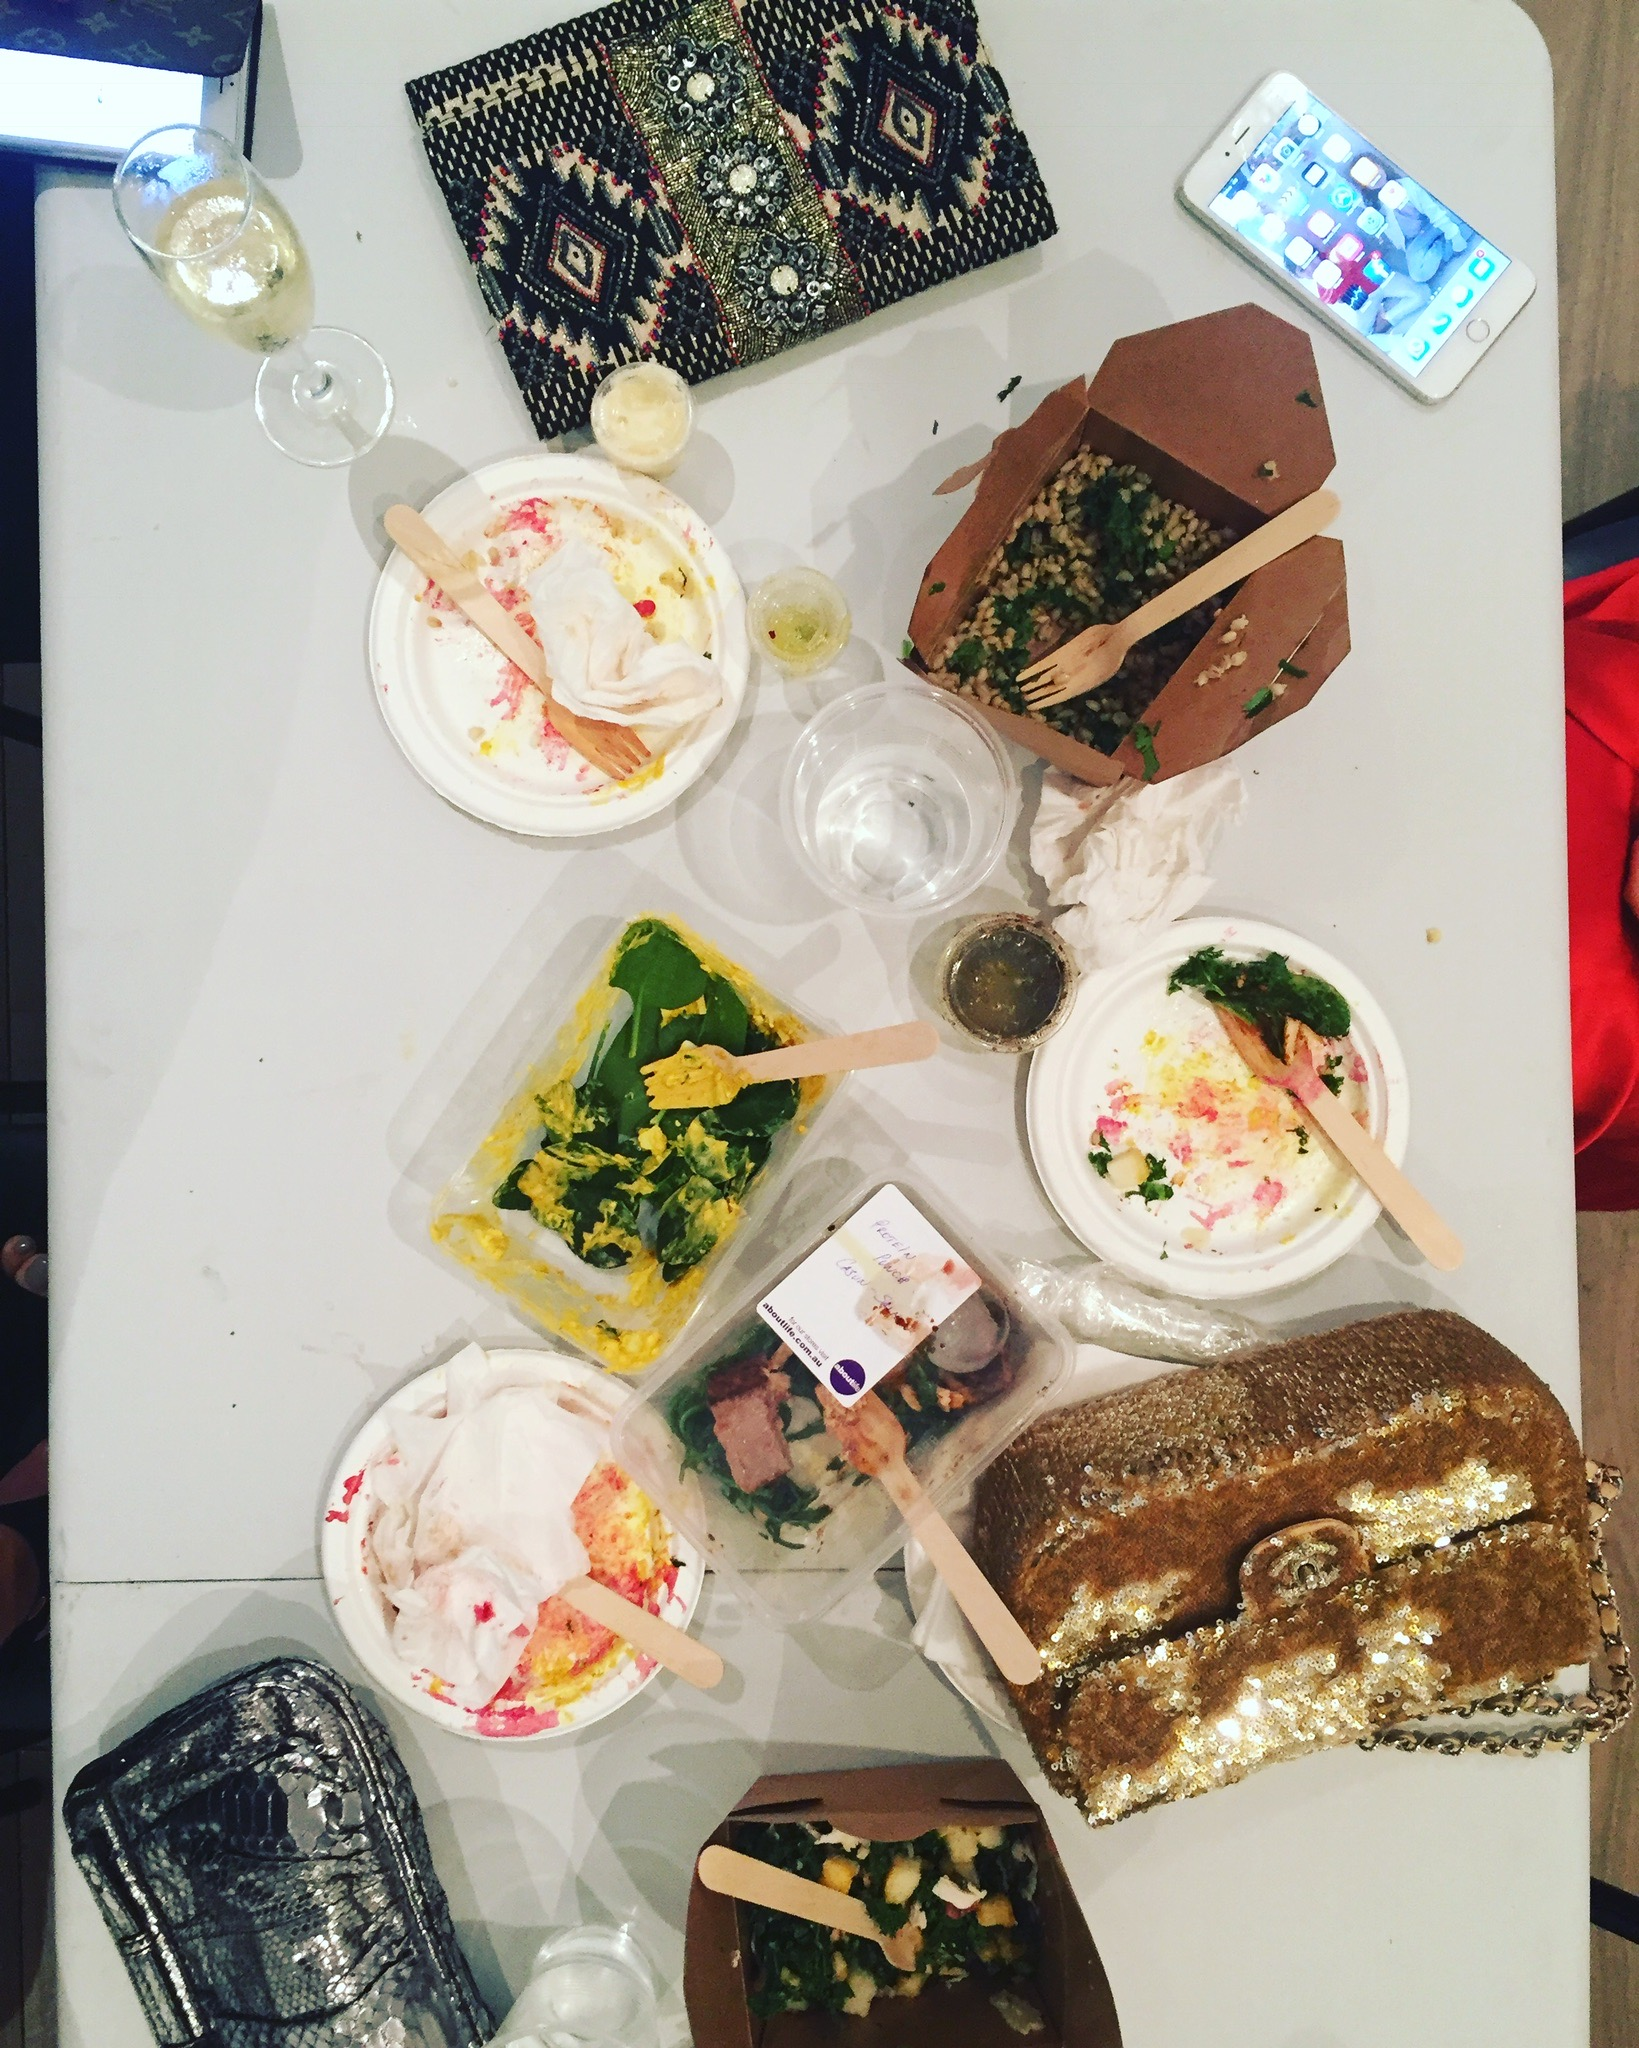 Behind the Scenes of The Real Housewives of Sydney - Crew Dinner